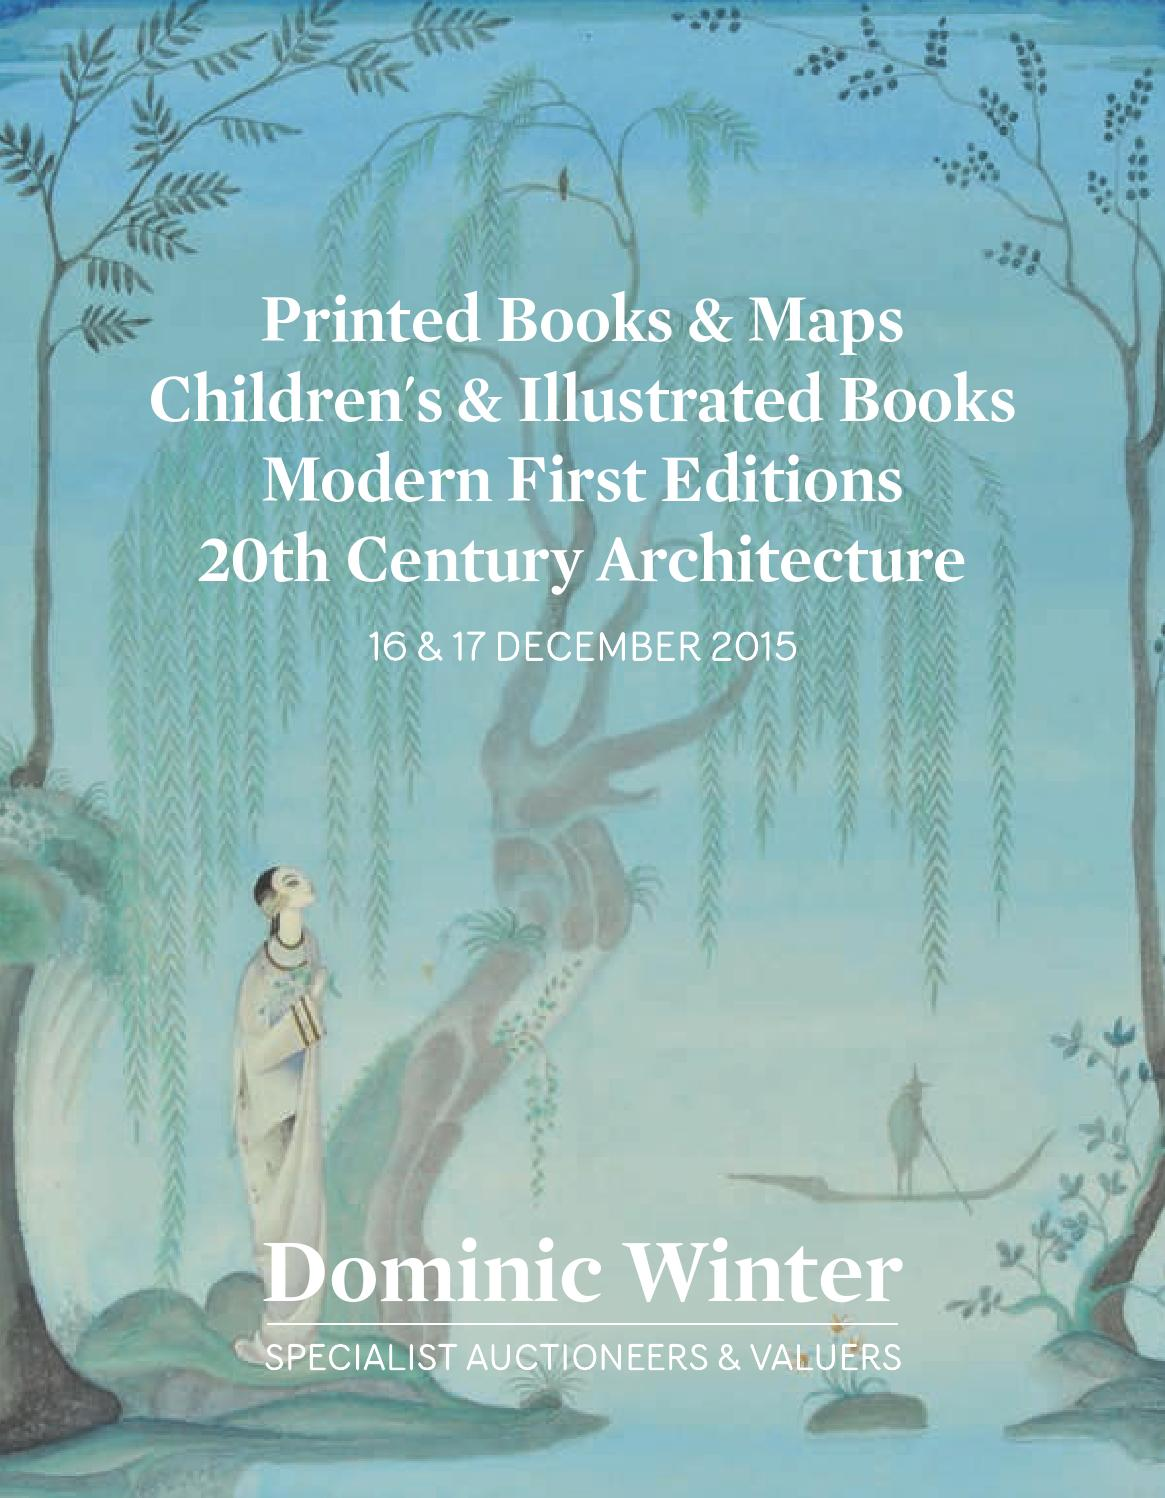 Natura Arte Aucta Translation Dominic Winter By Jamm Design Ltd Issuu